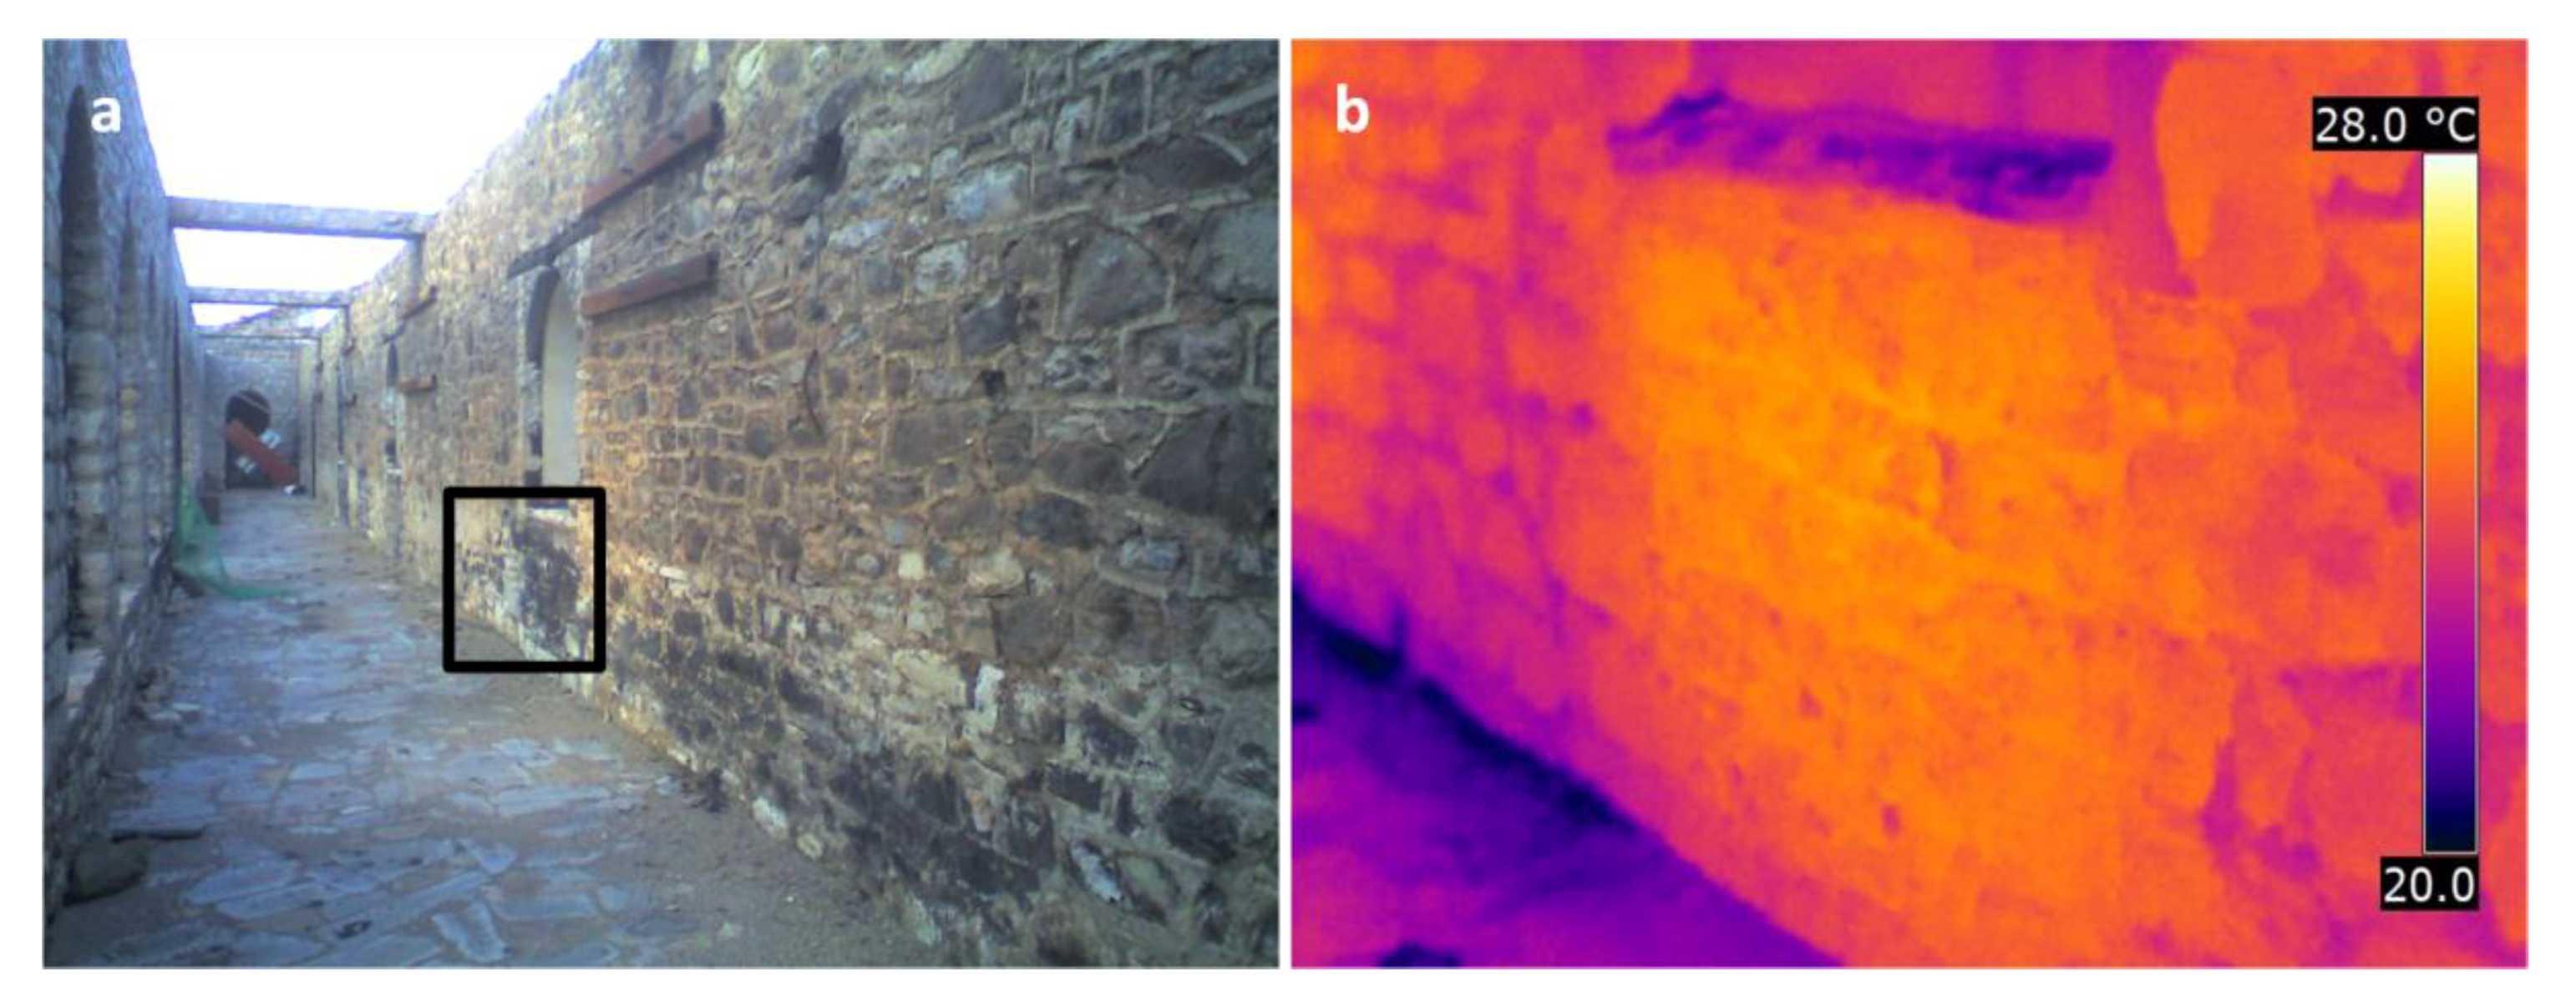 Heritage | Free Full-Text | The Effect of Fire on Building